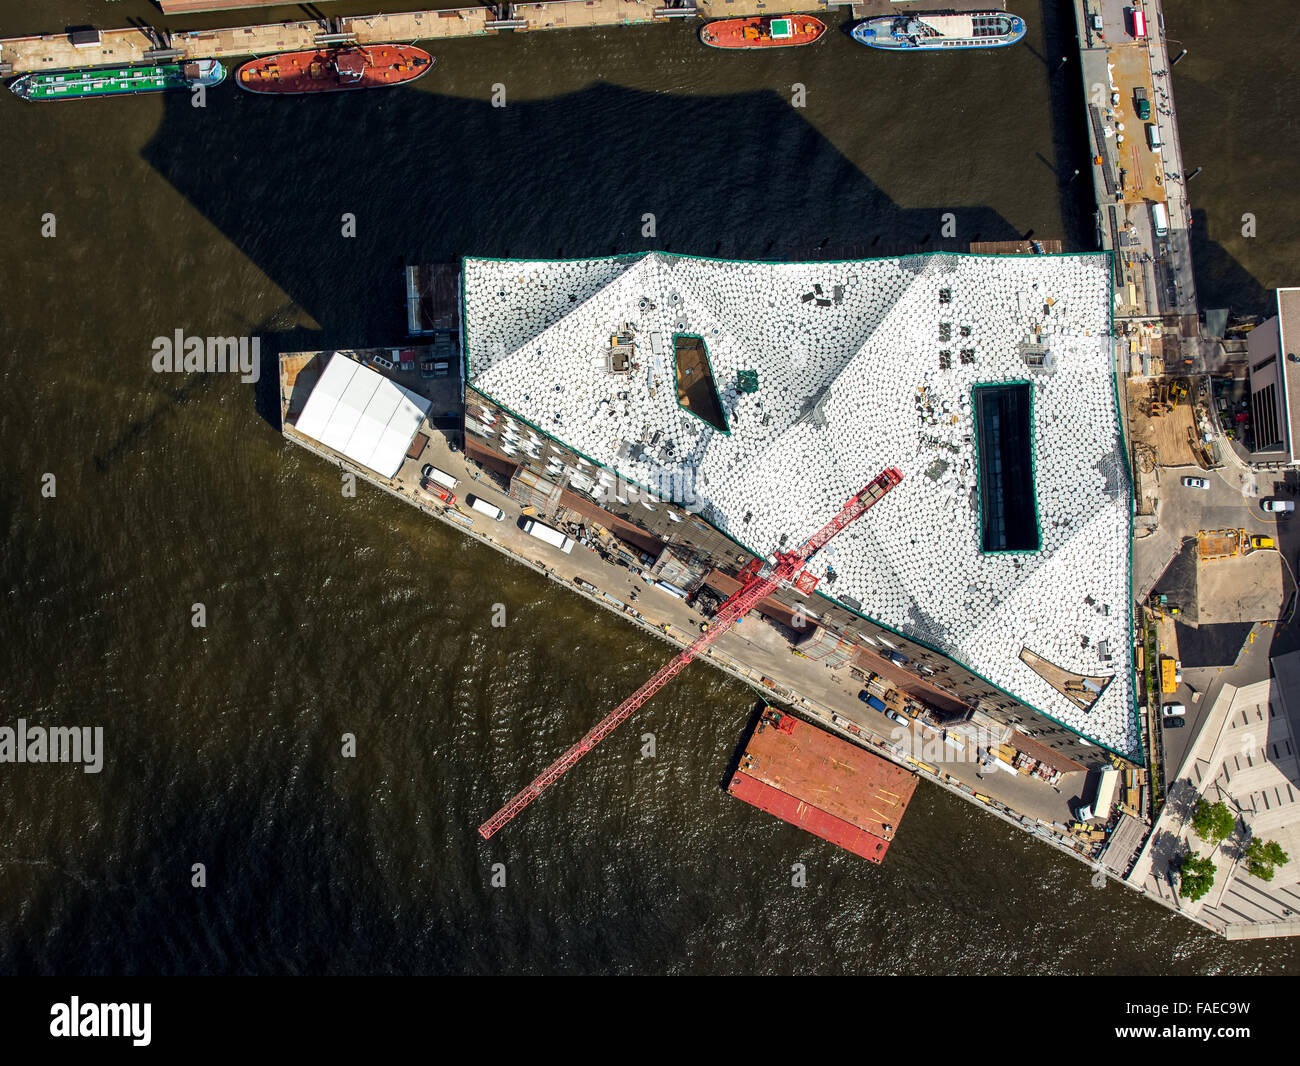 Aerial view, Elbphilharmonie with HafenCity, roof construction of the Elbe Philharmonic Hall, Speicherstadt warehouse - Stock Image